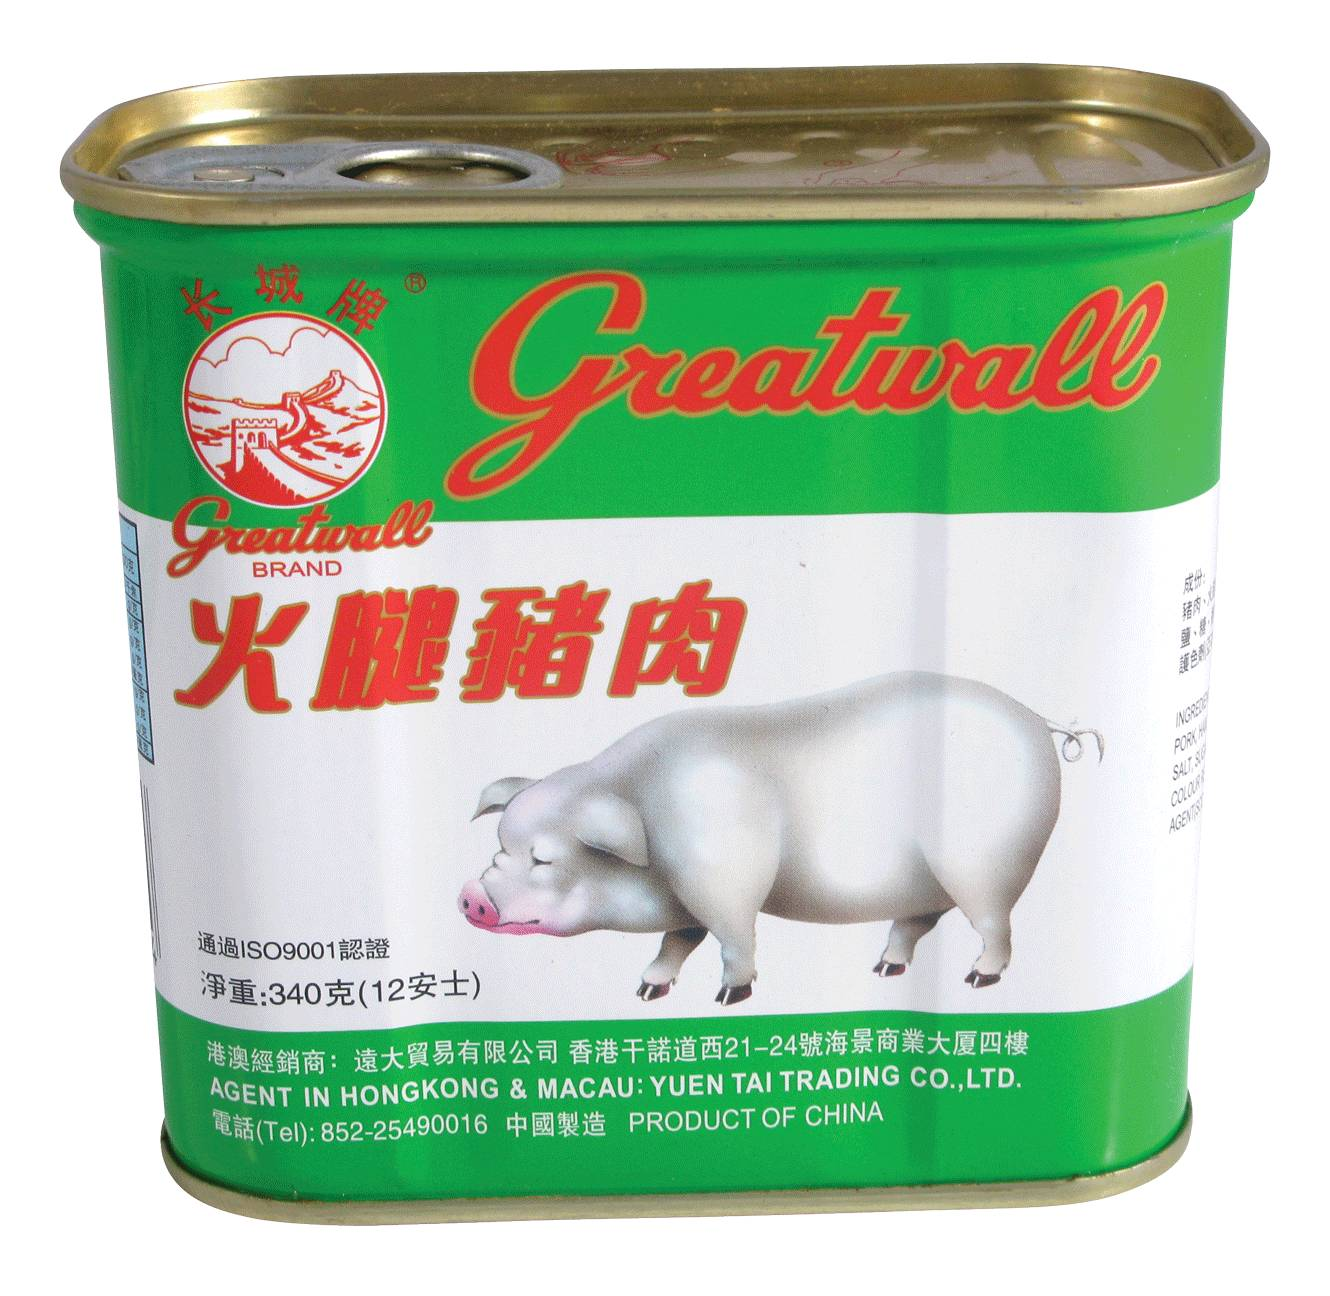 GREAT WALL CHOPPED PORK & HAM 340G